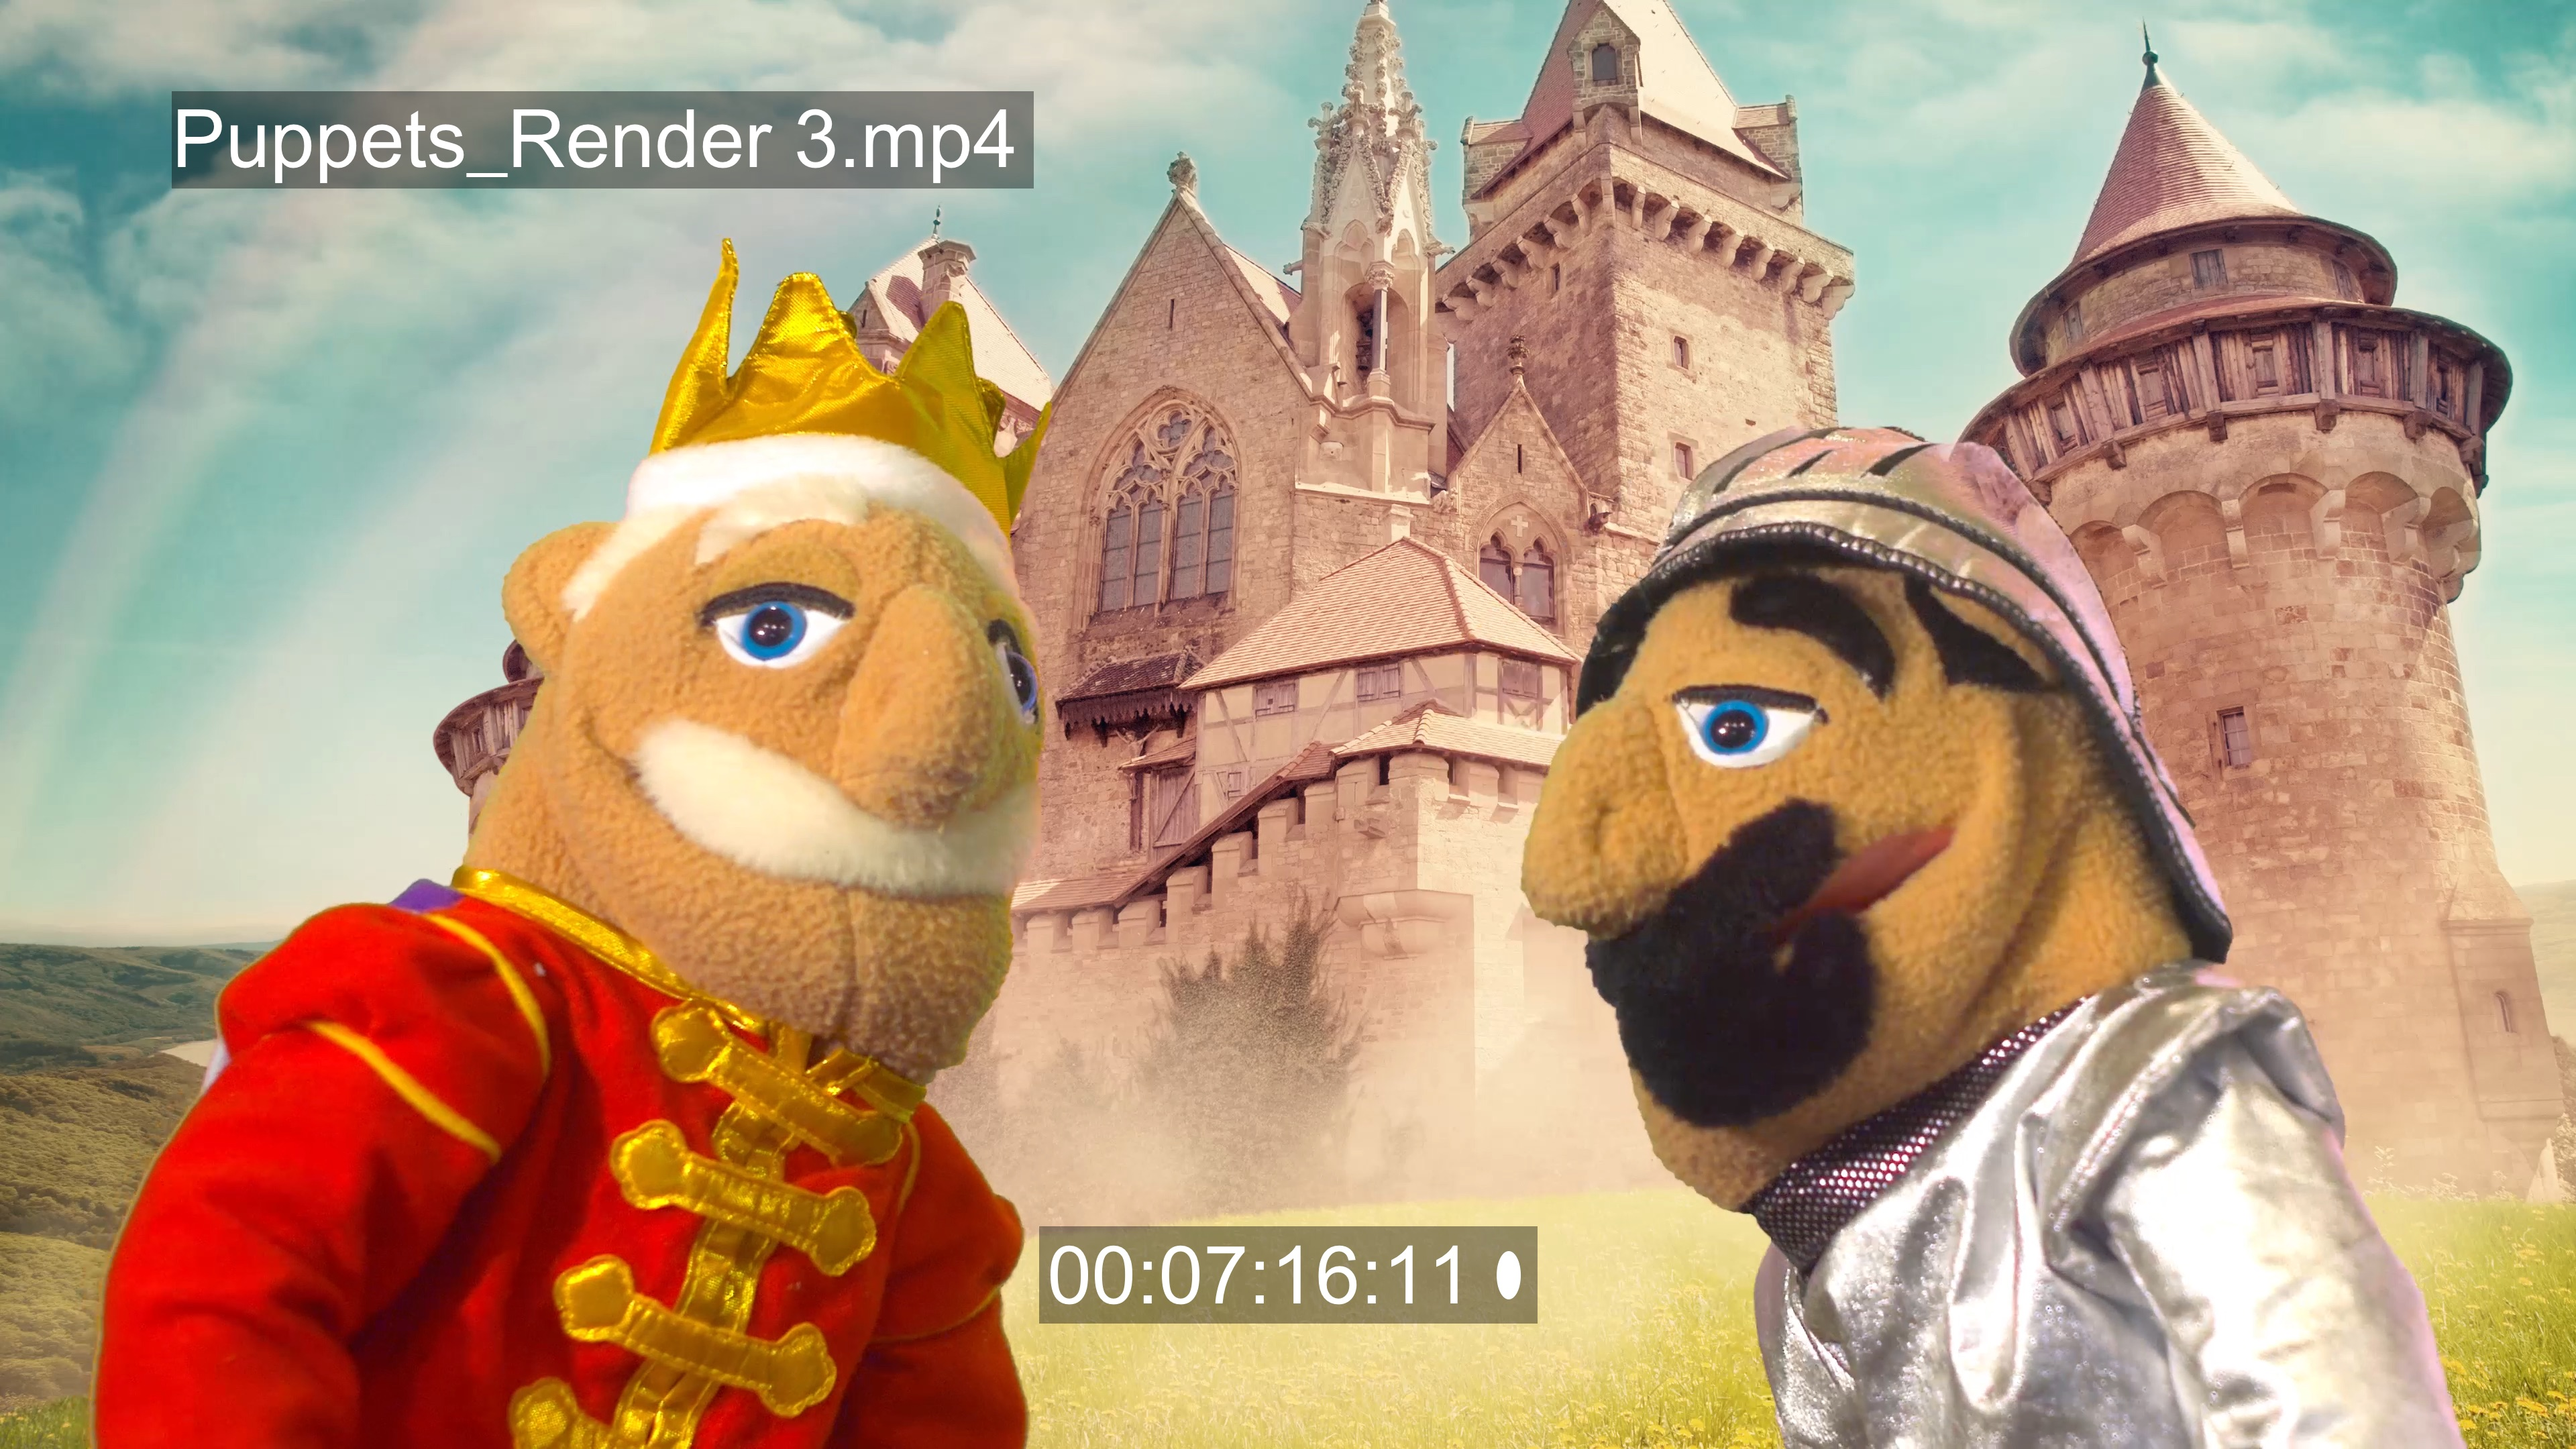 4K Puppets